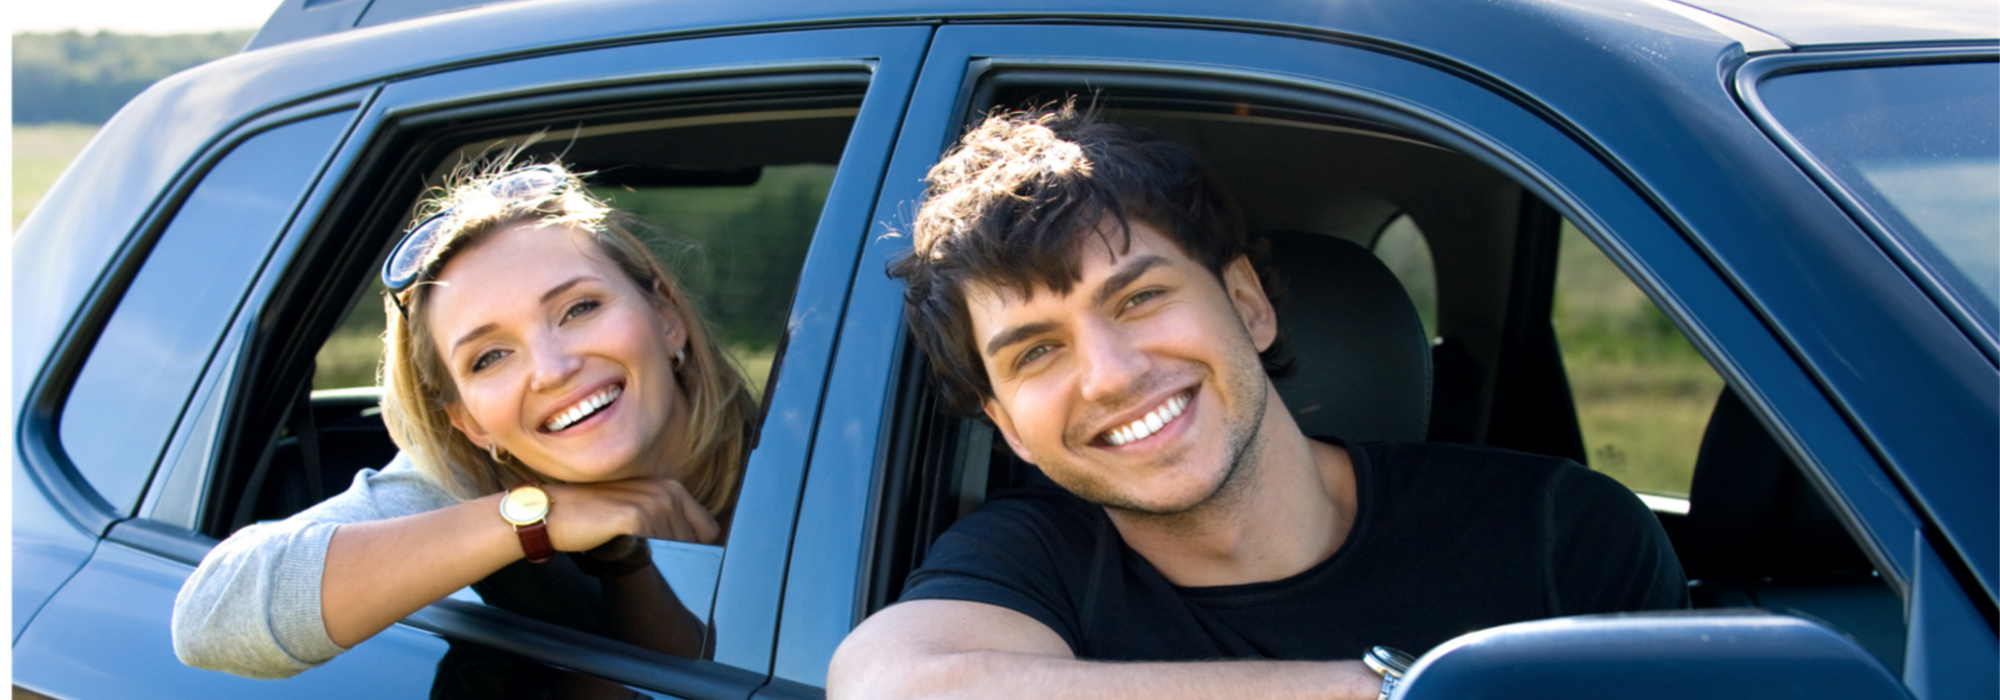 Young Drivers Car Insurance Quotes - KennCo Insurance Ireland